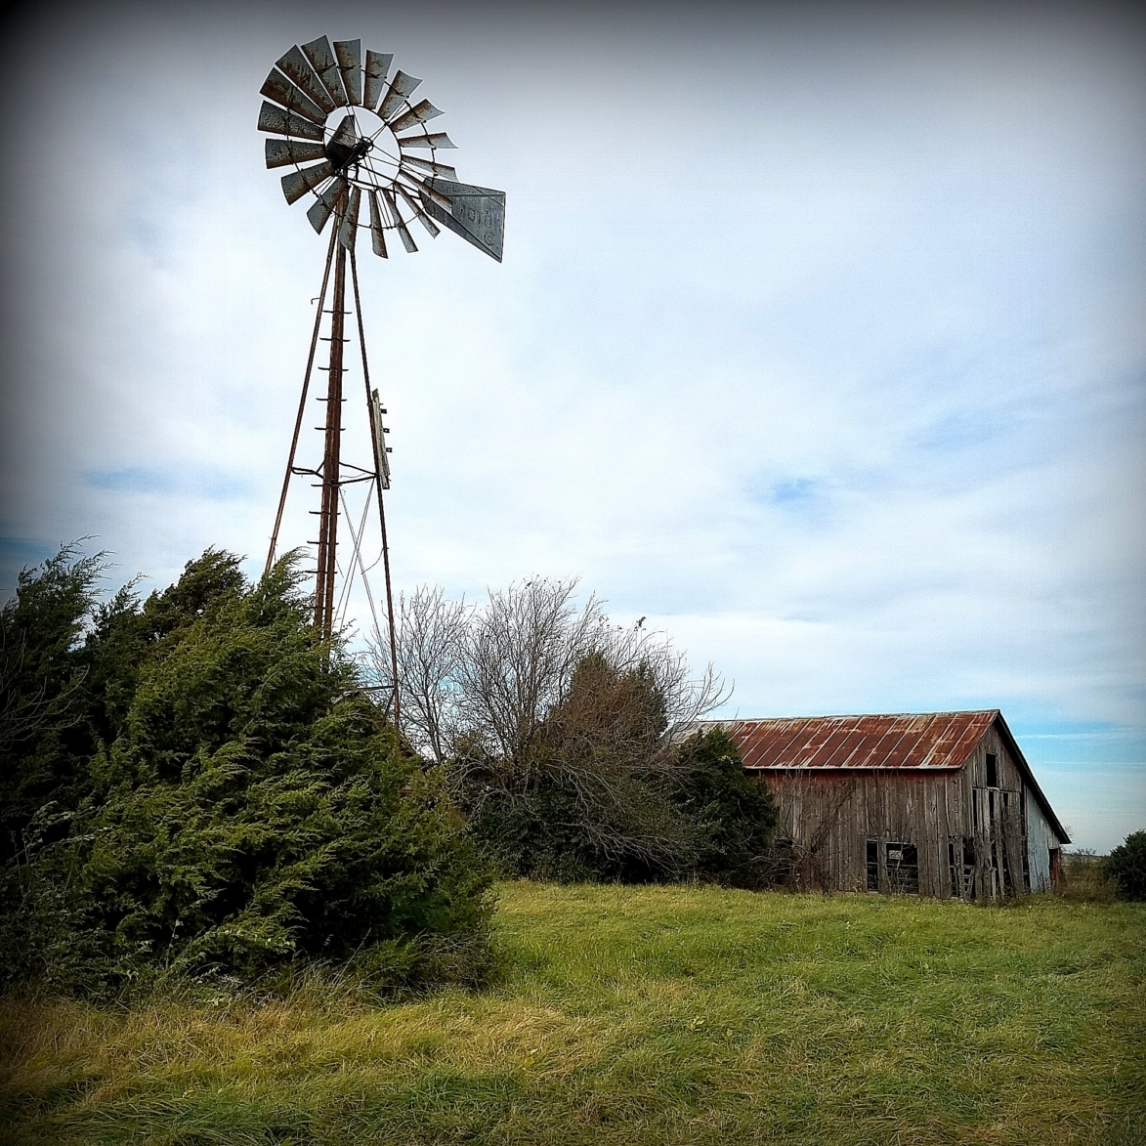 The Windmill. Photograph by Larry Hacker.